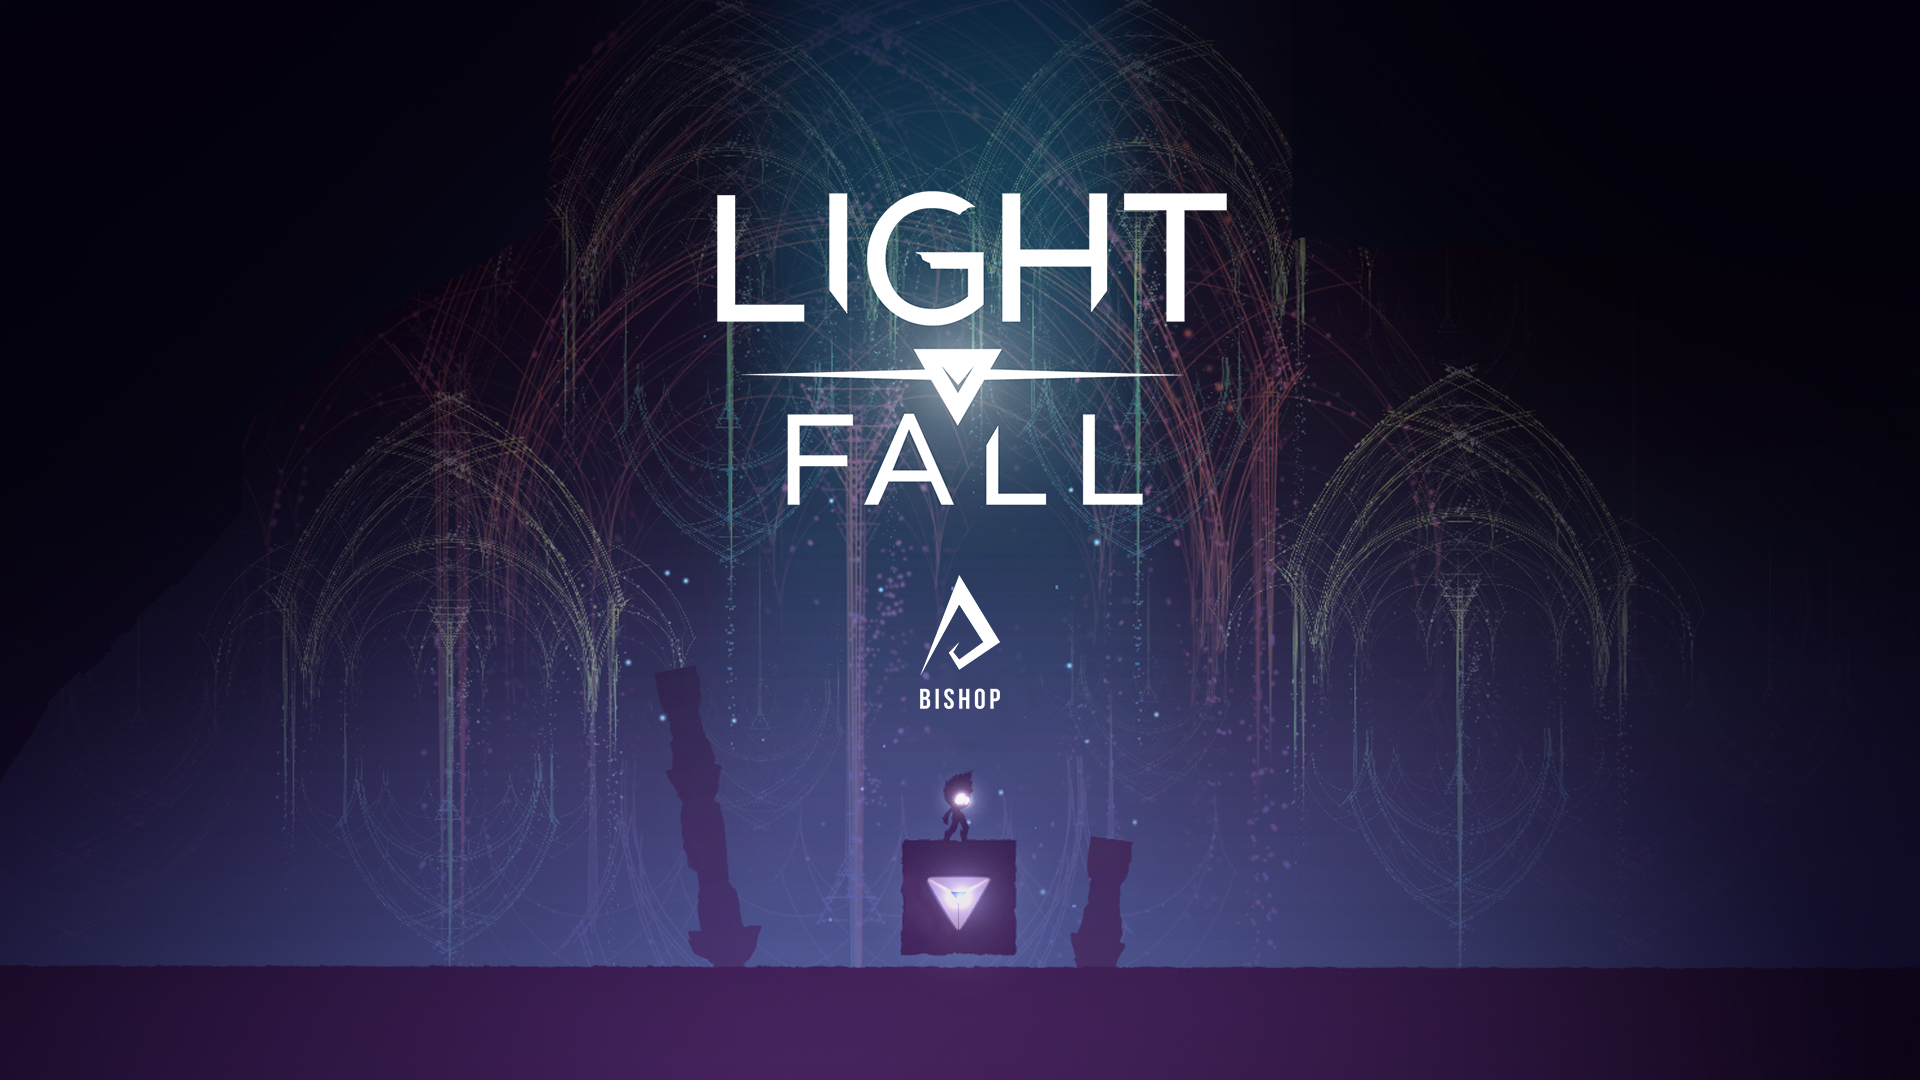 lightfall_05.jpg